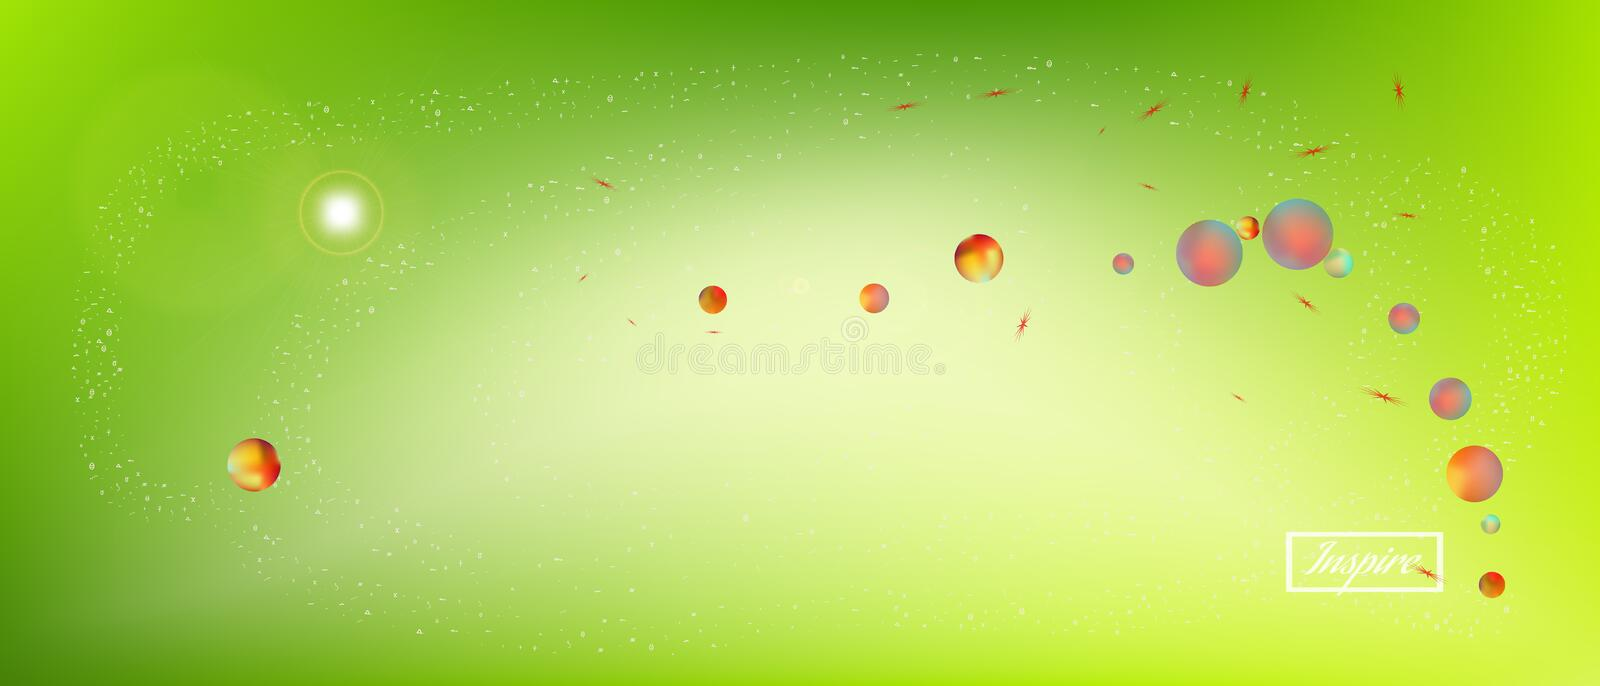 Funny abstract ultra wide space background stock illustration